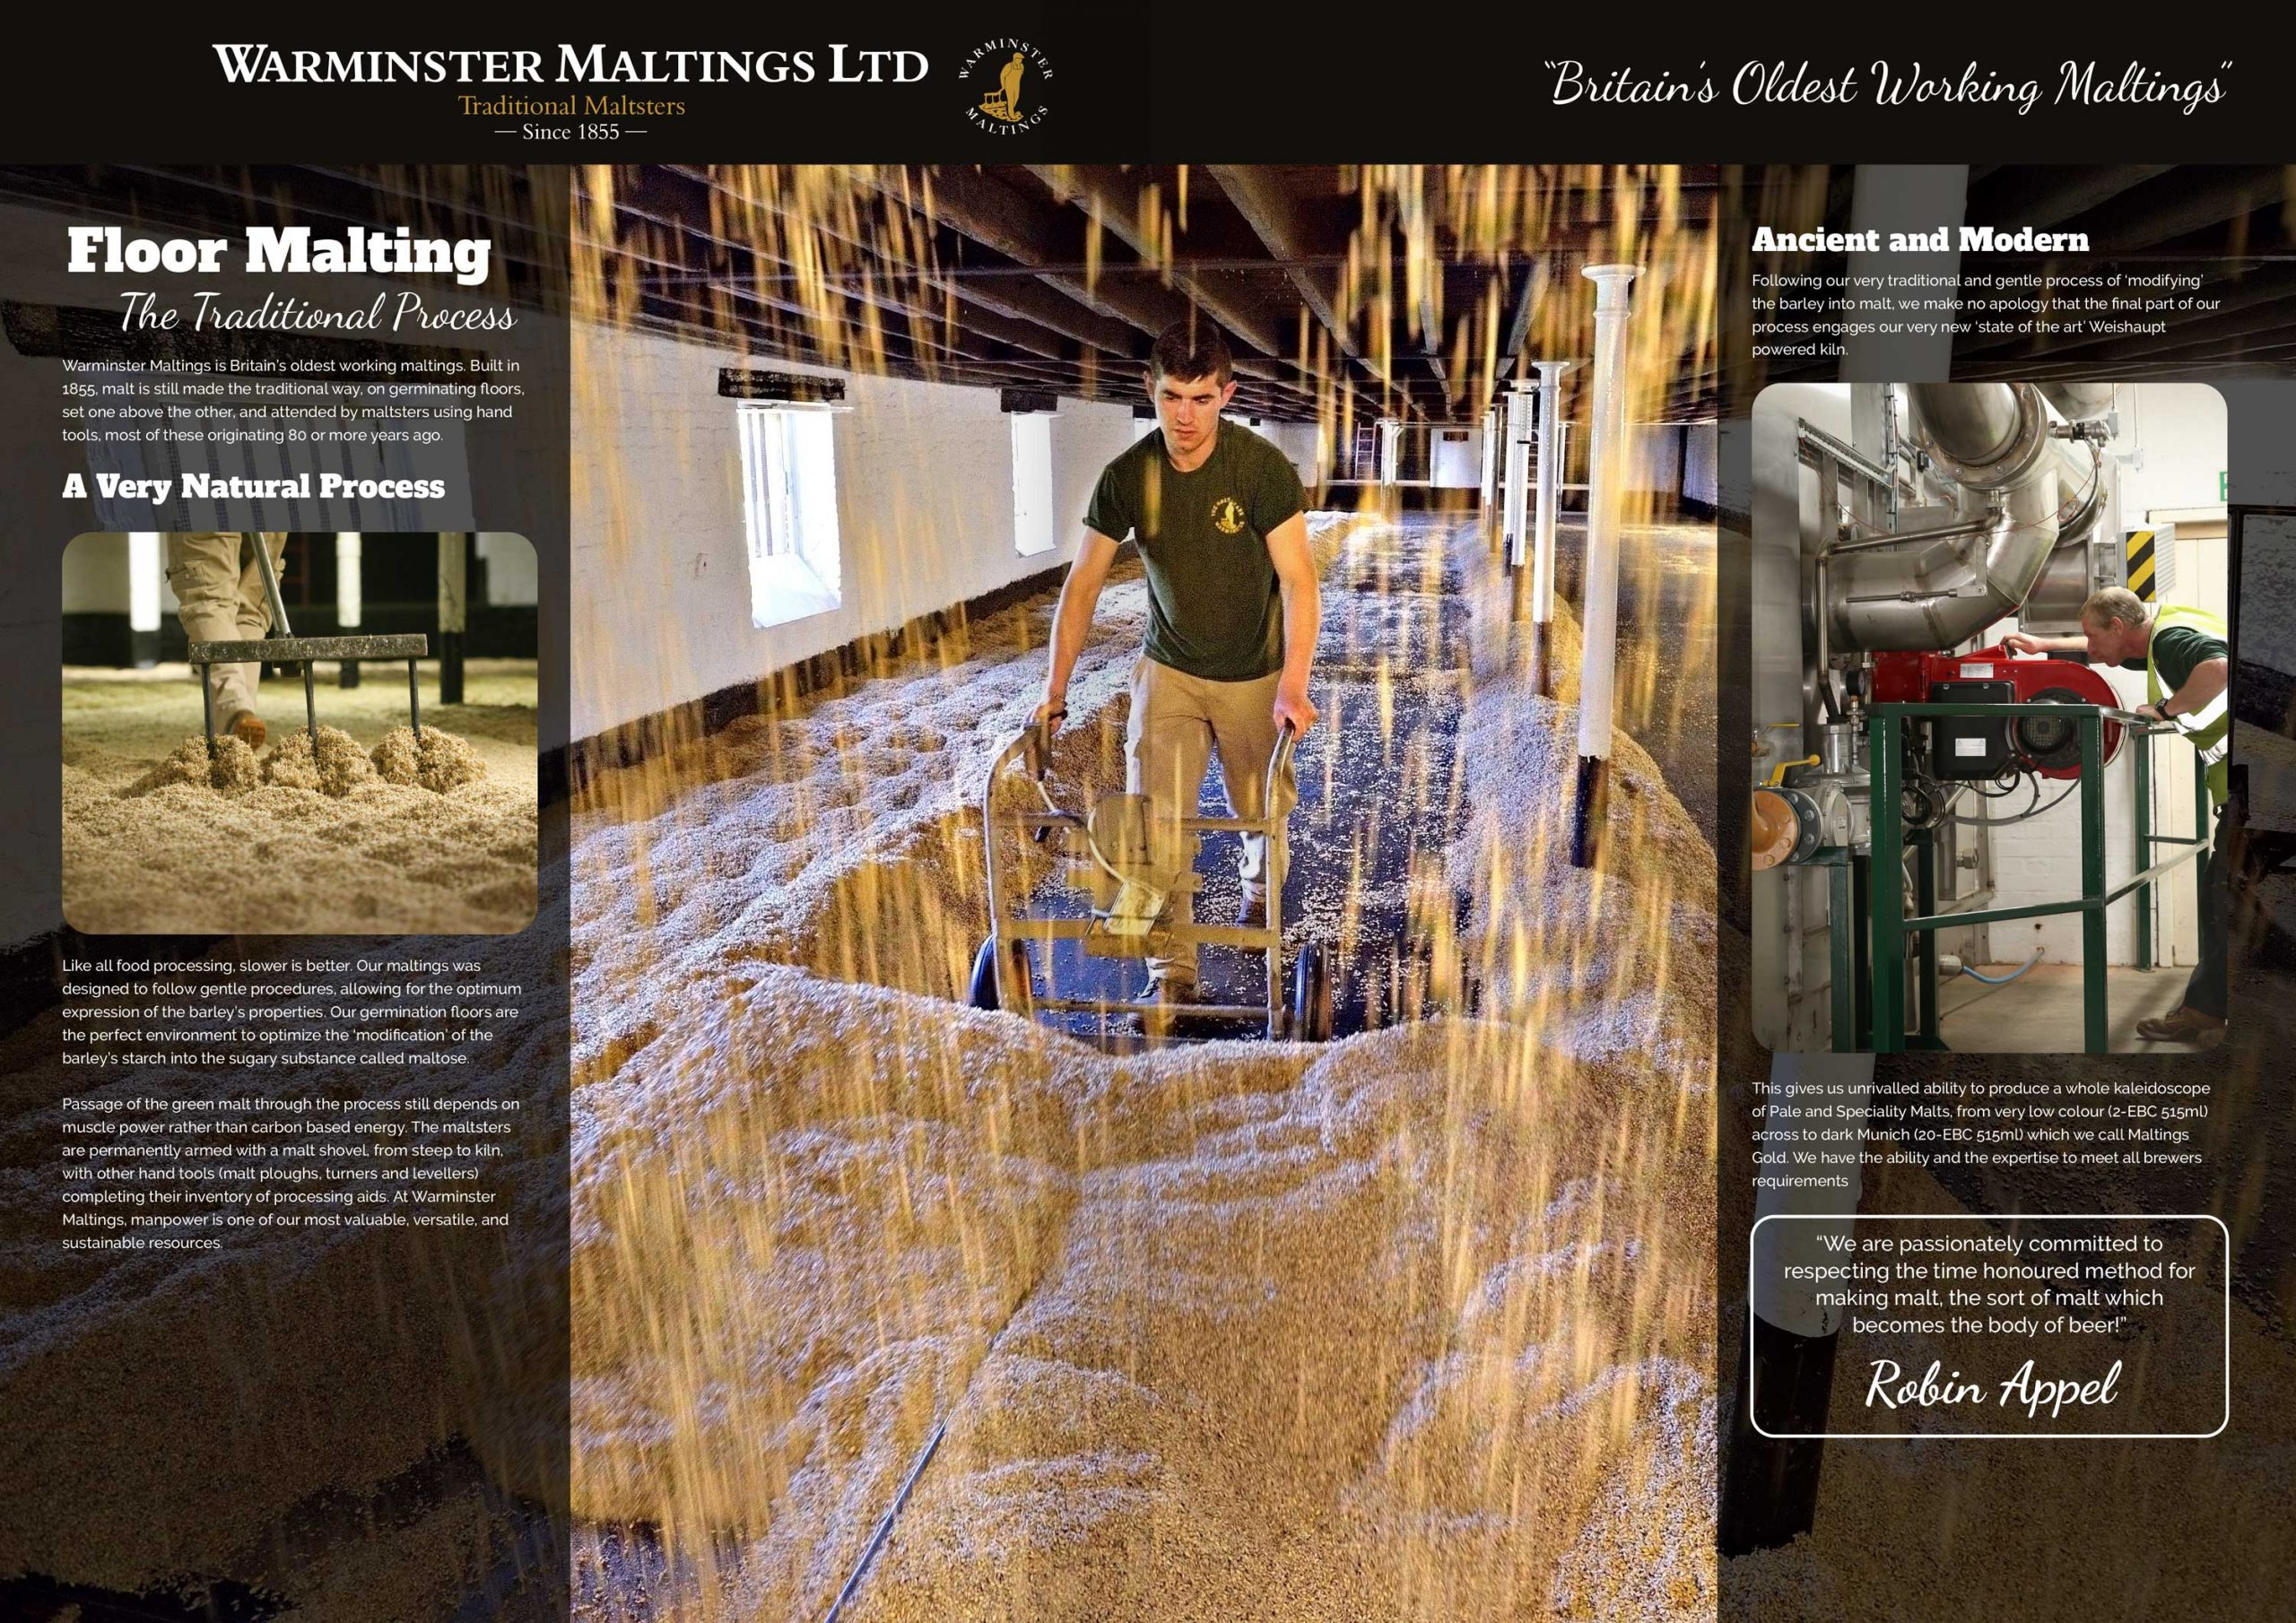 Warminster Maltings - The Traditional Process